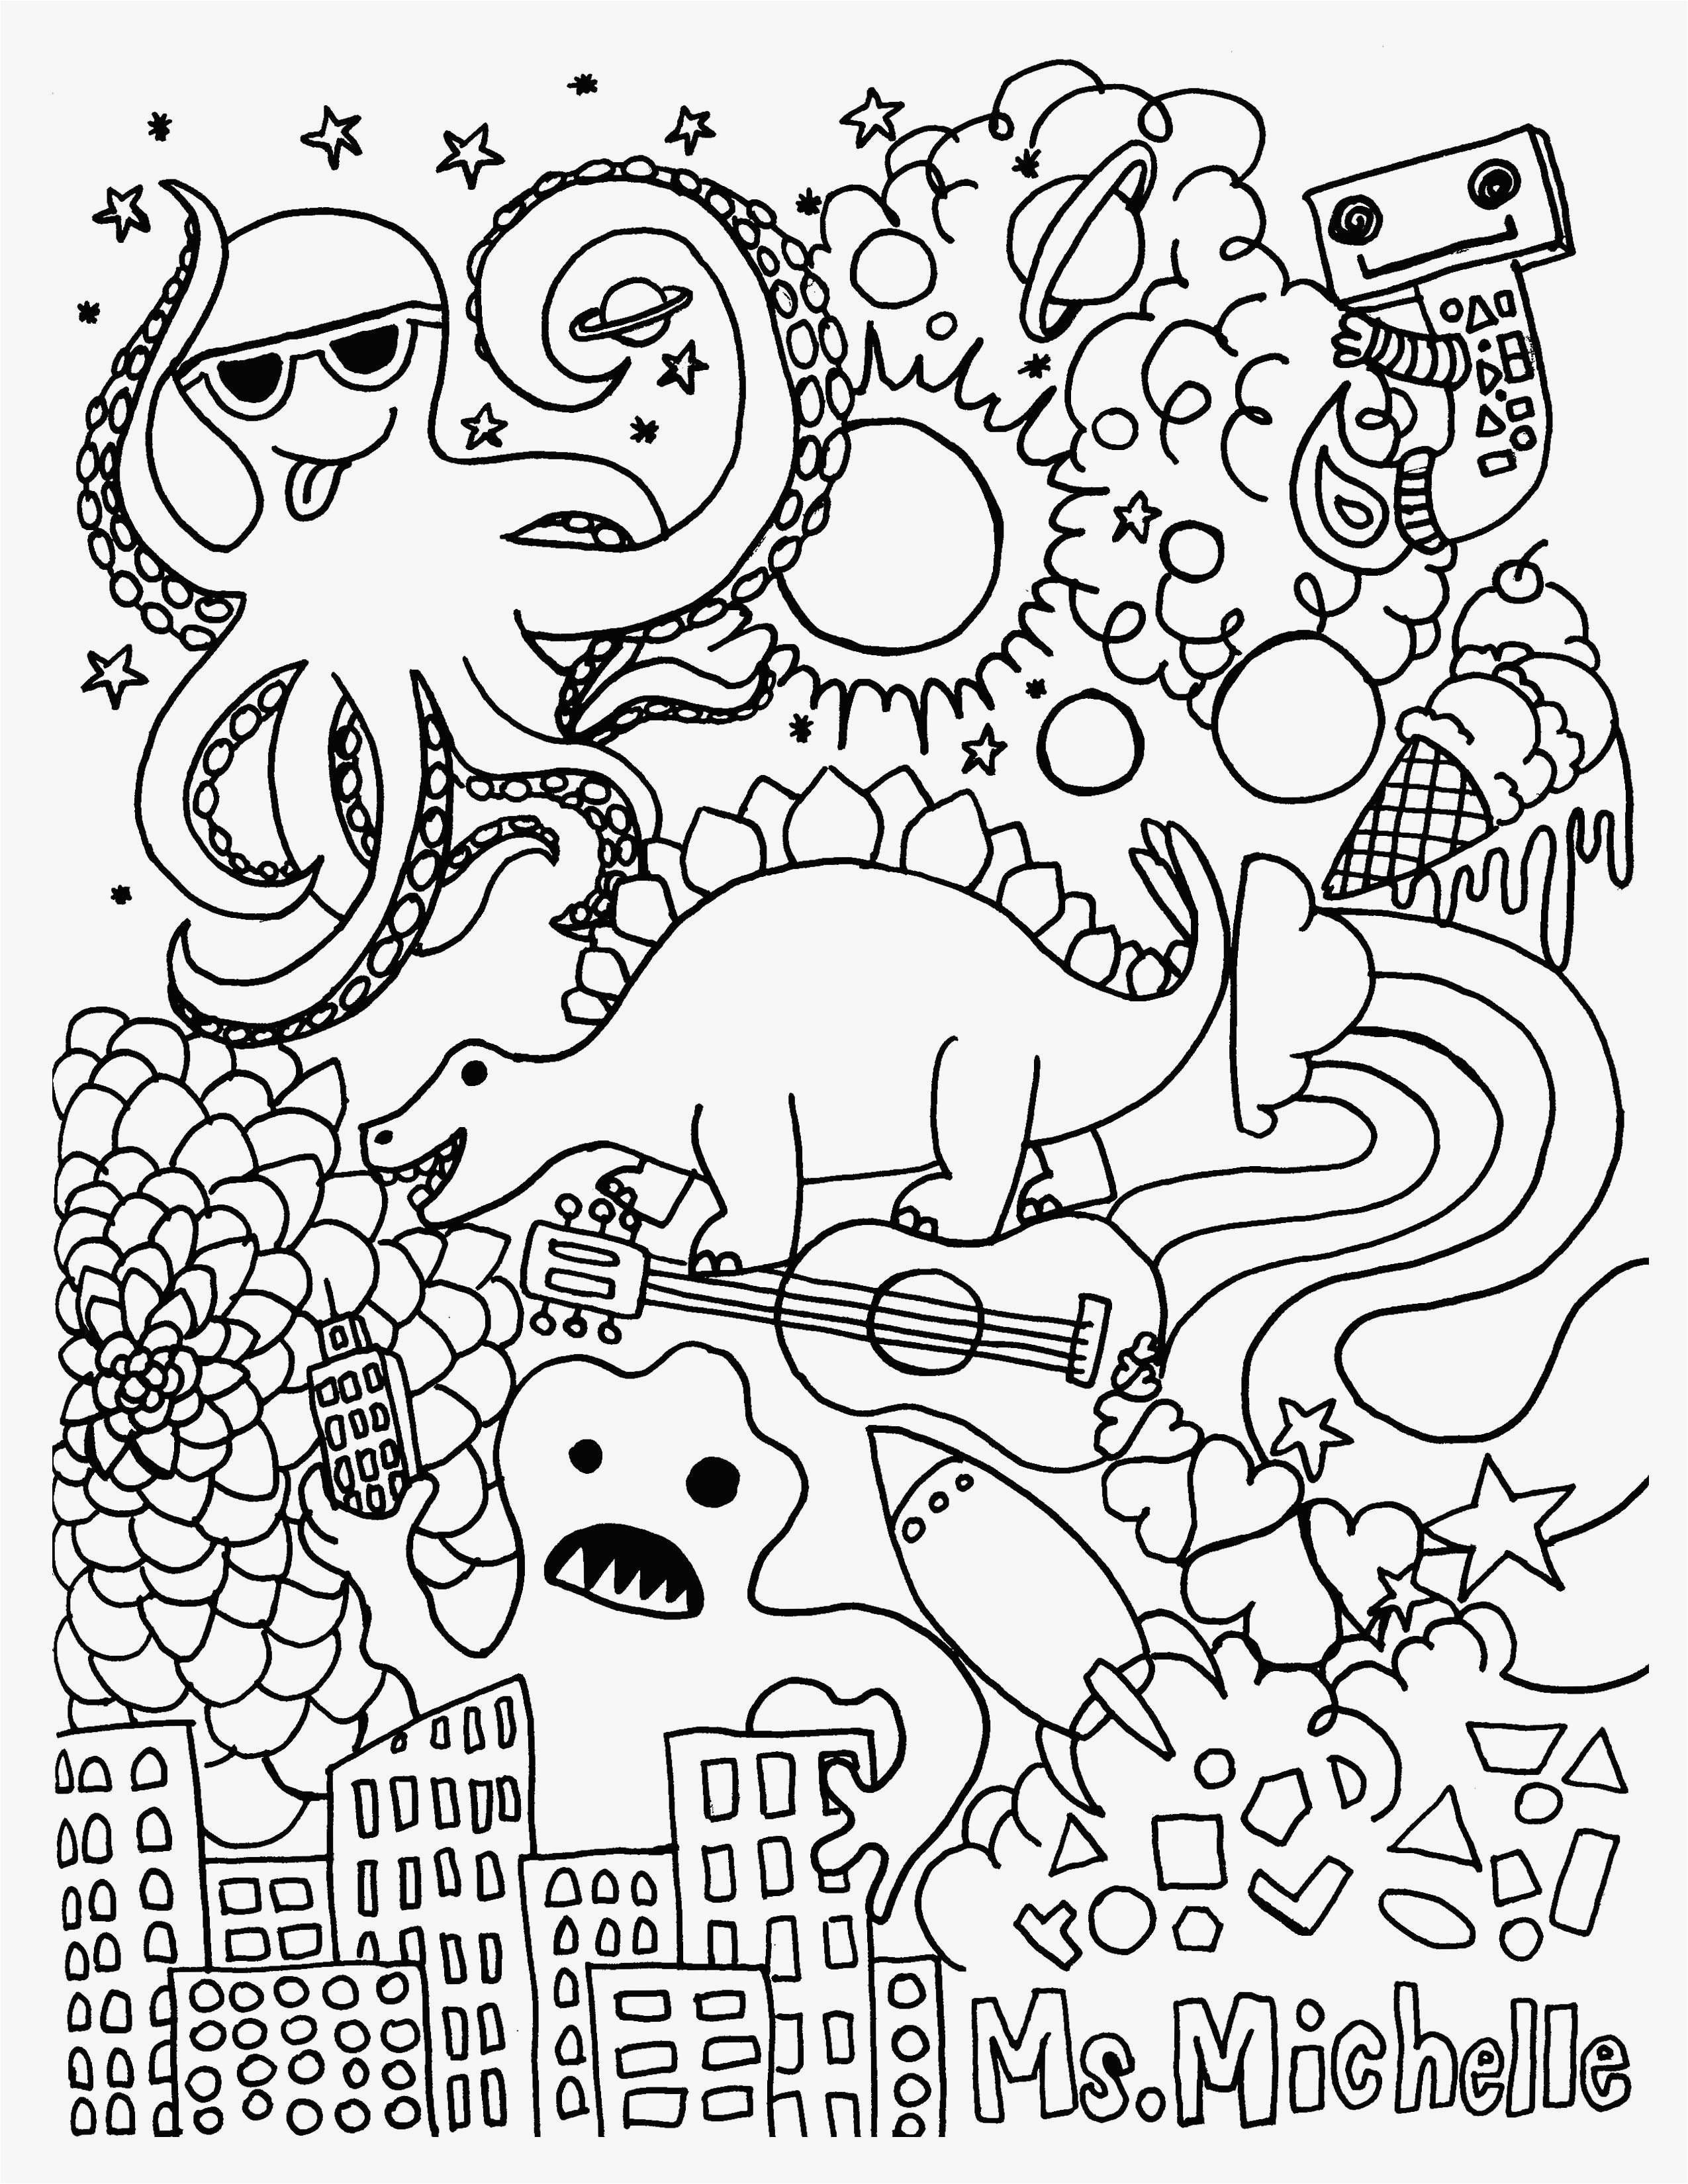 Preschool fall coloring pages free coloring pages for kids printable unique coloring printables 0d